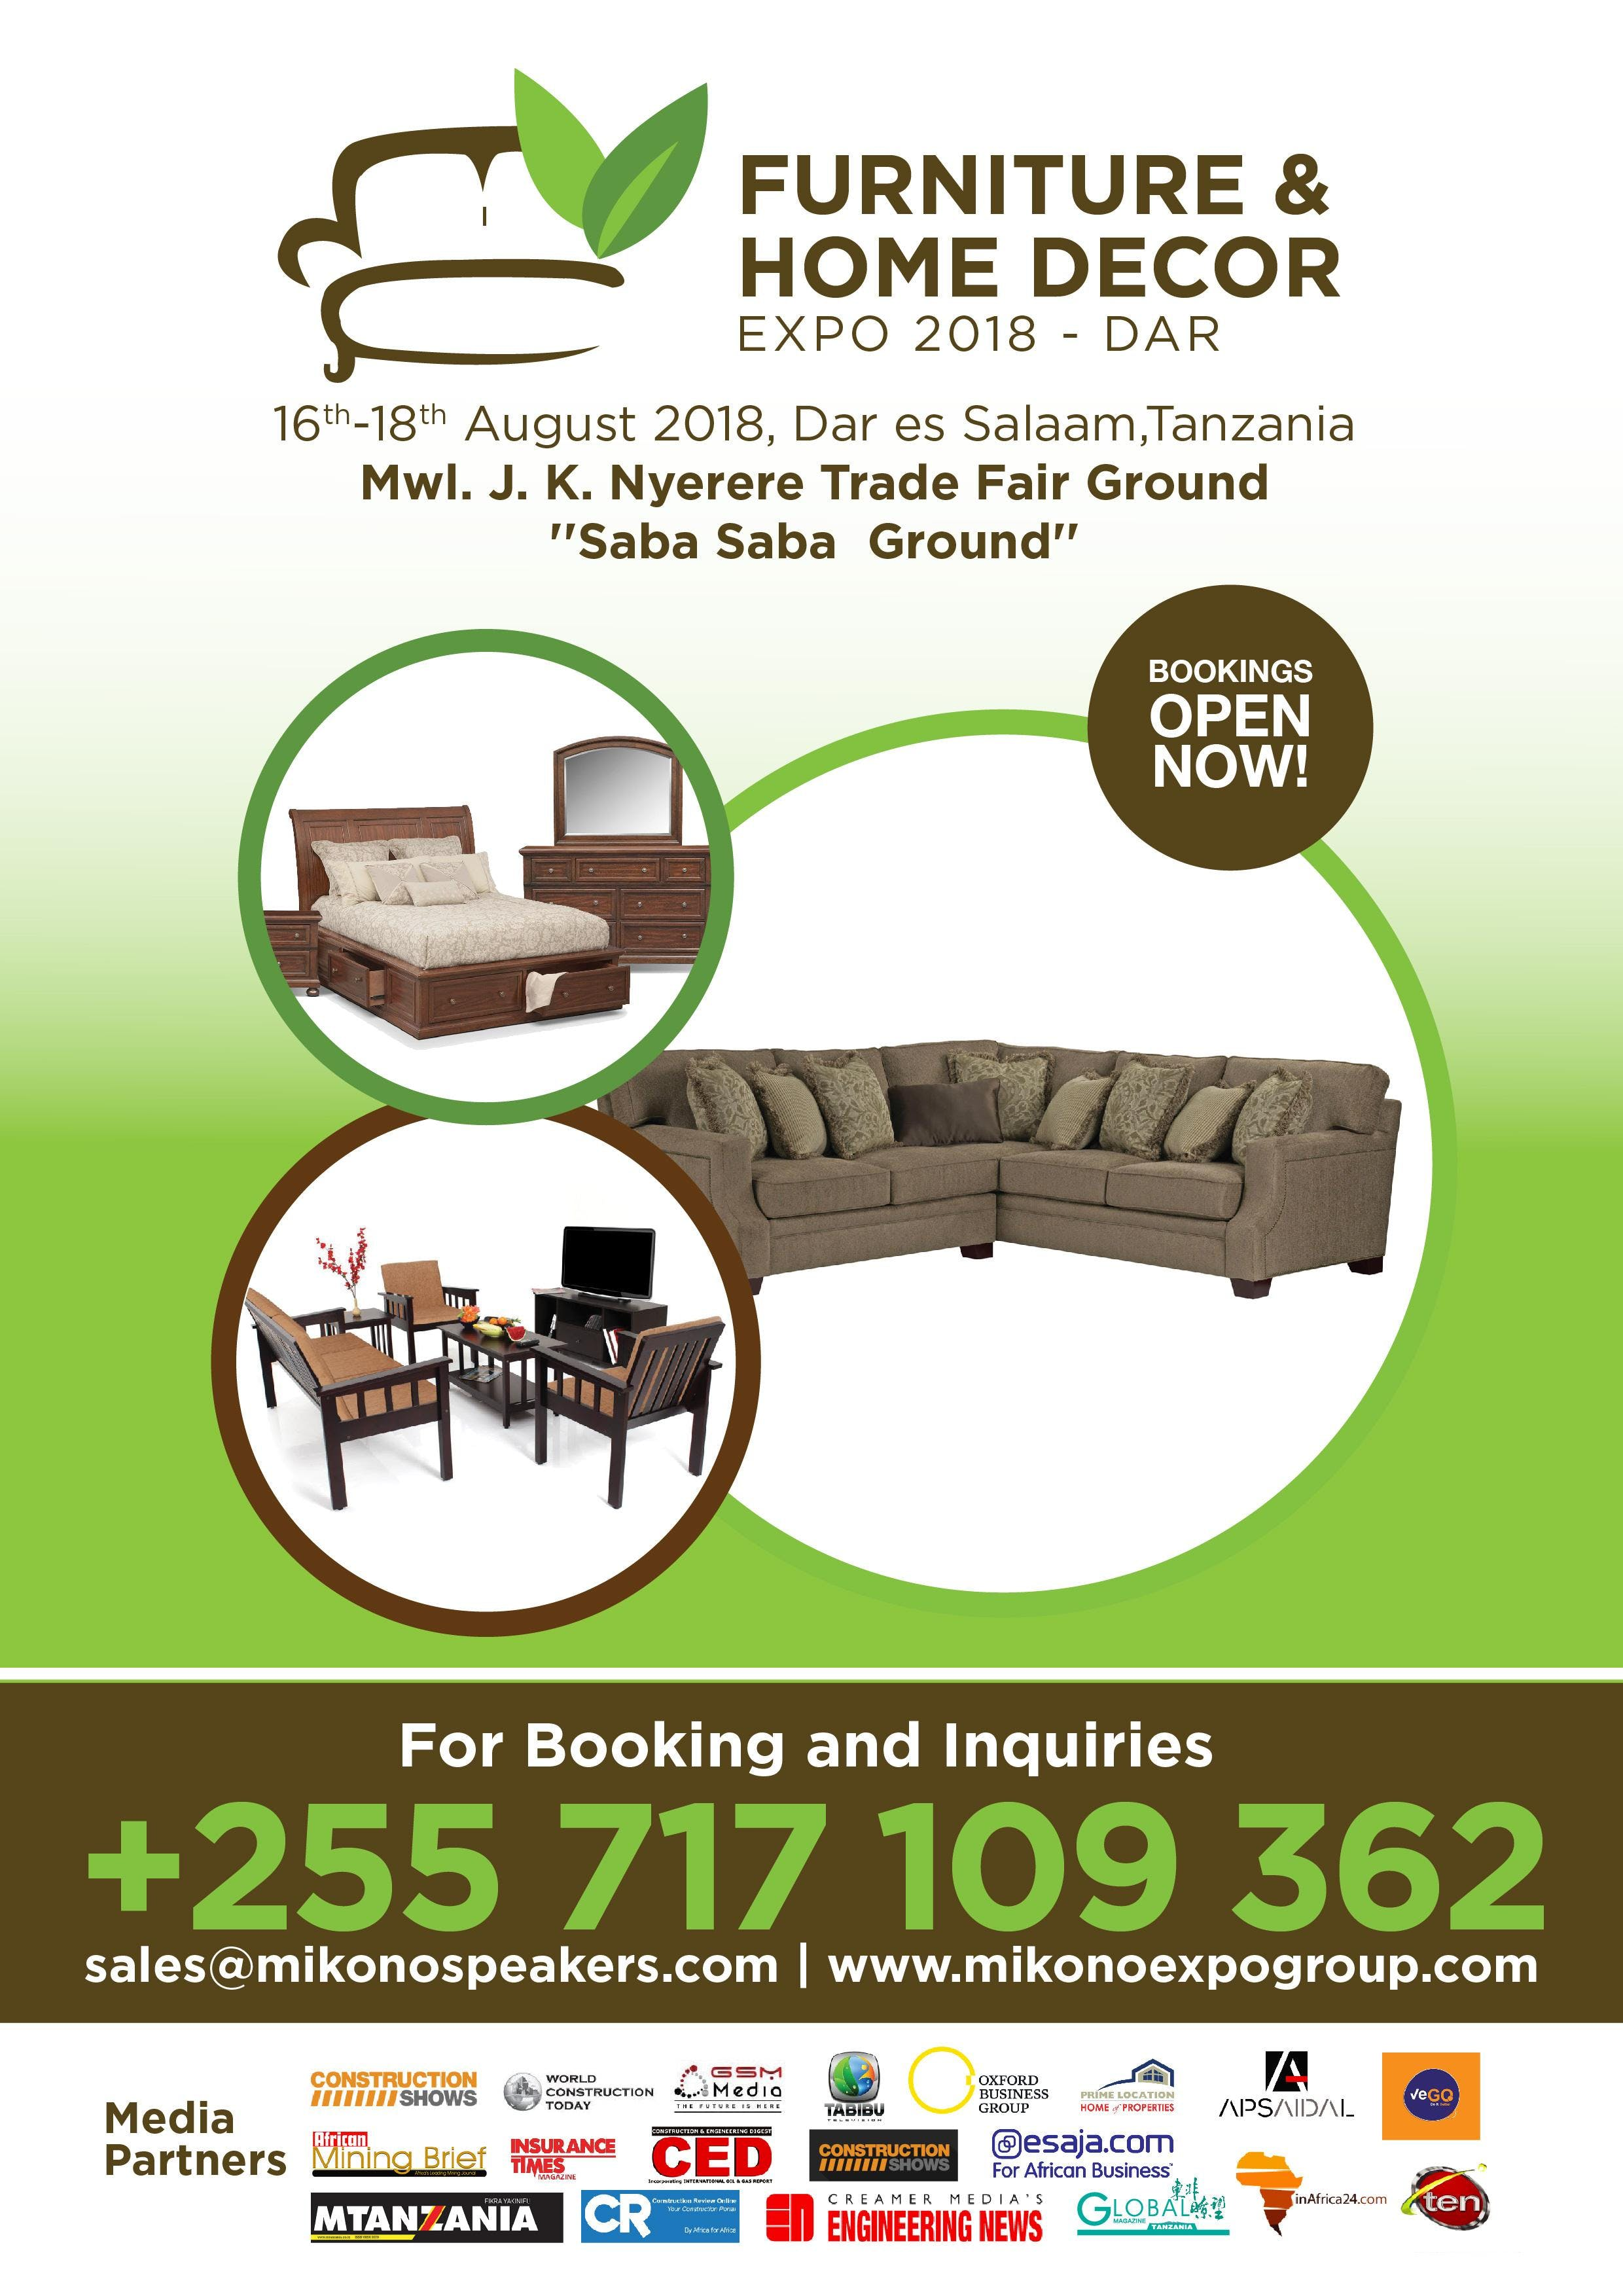 Furniture And Home Decor Expo 2018 At Mwl Nyerere Trade Fair Grounds